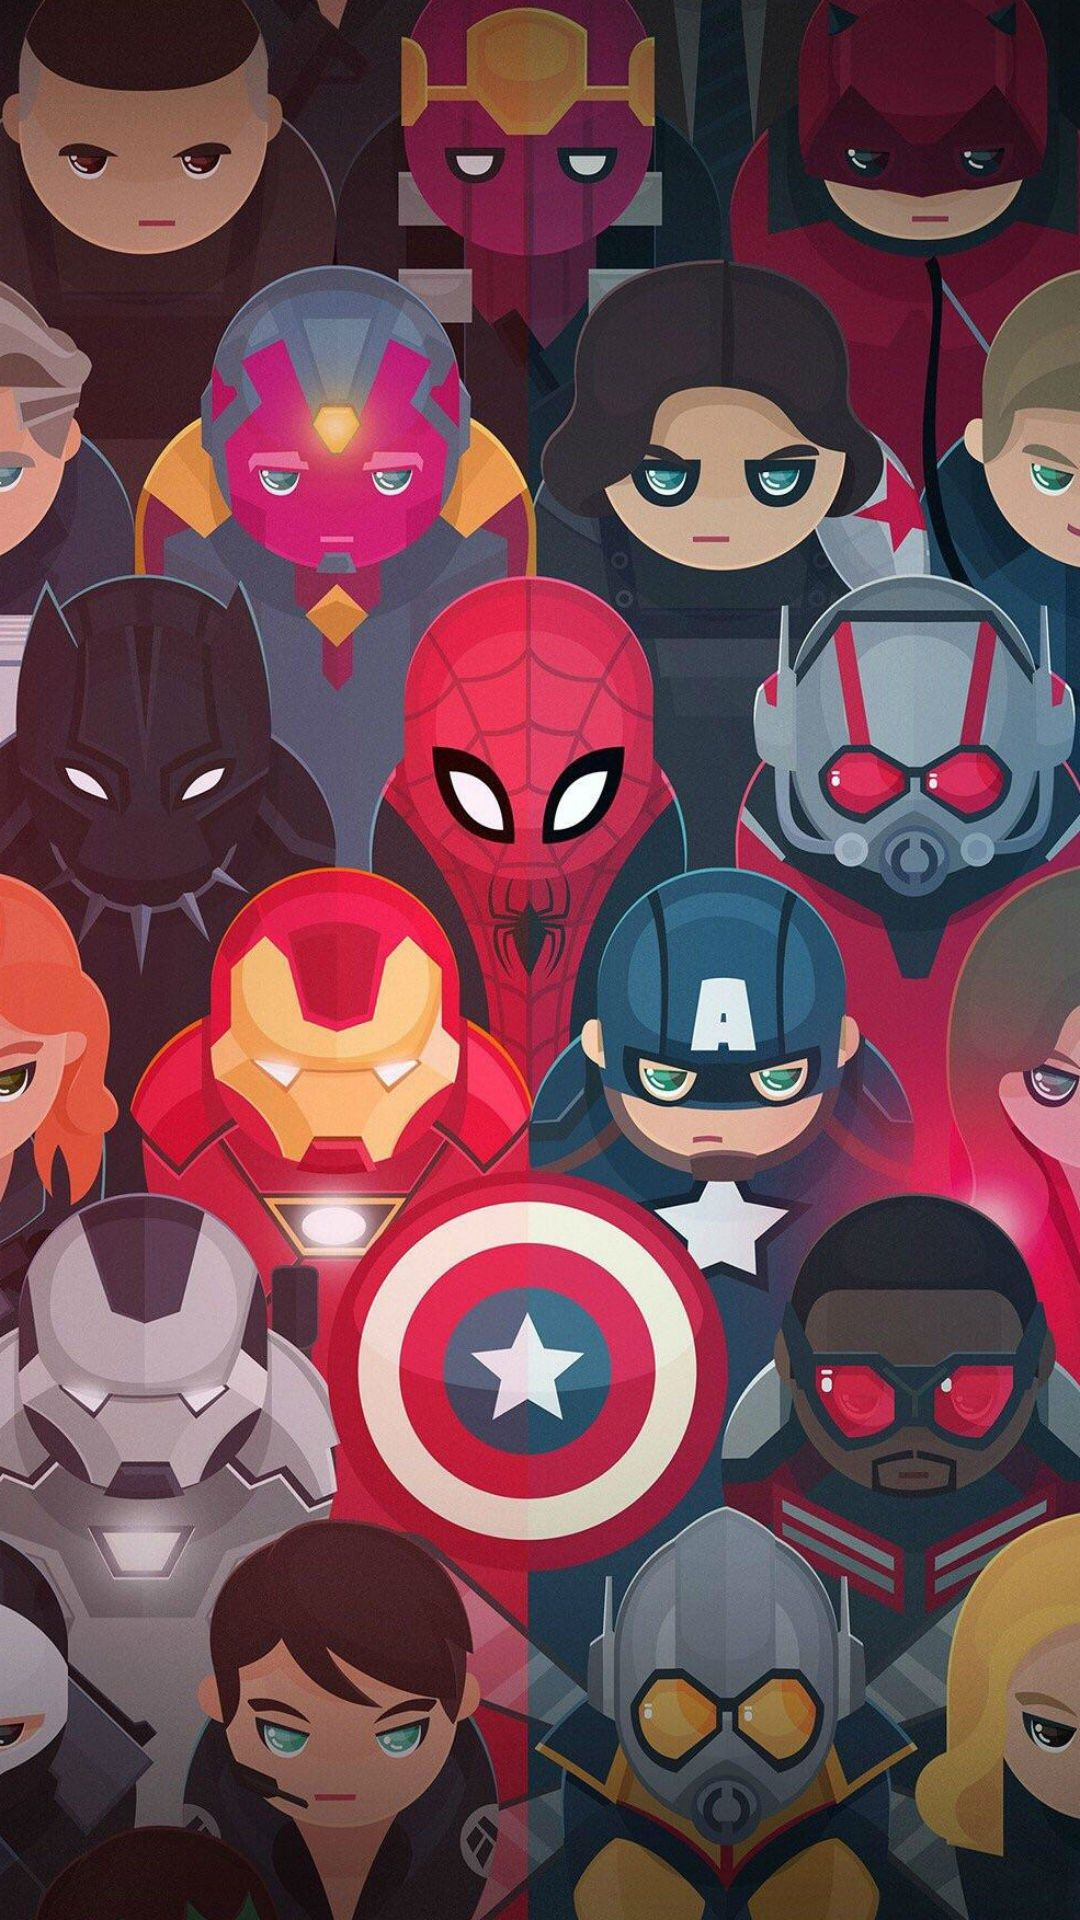 Avengers Tap To See More Cute Cartoon Wallpapers Mobile9